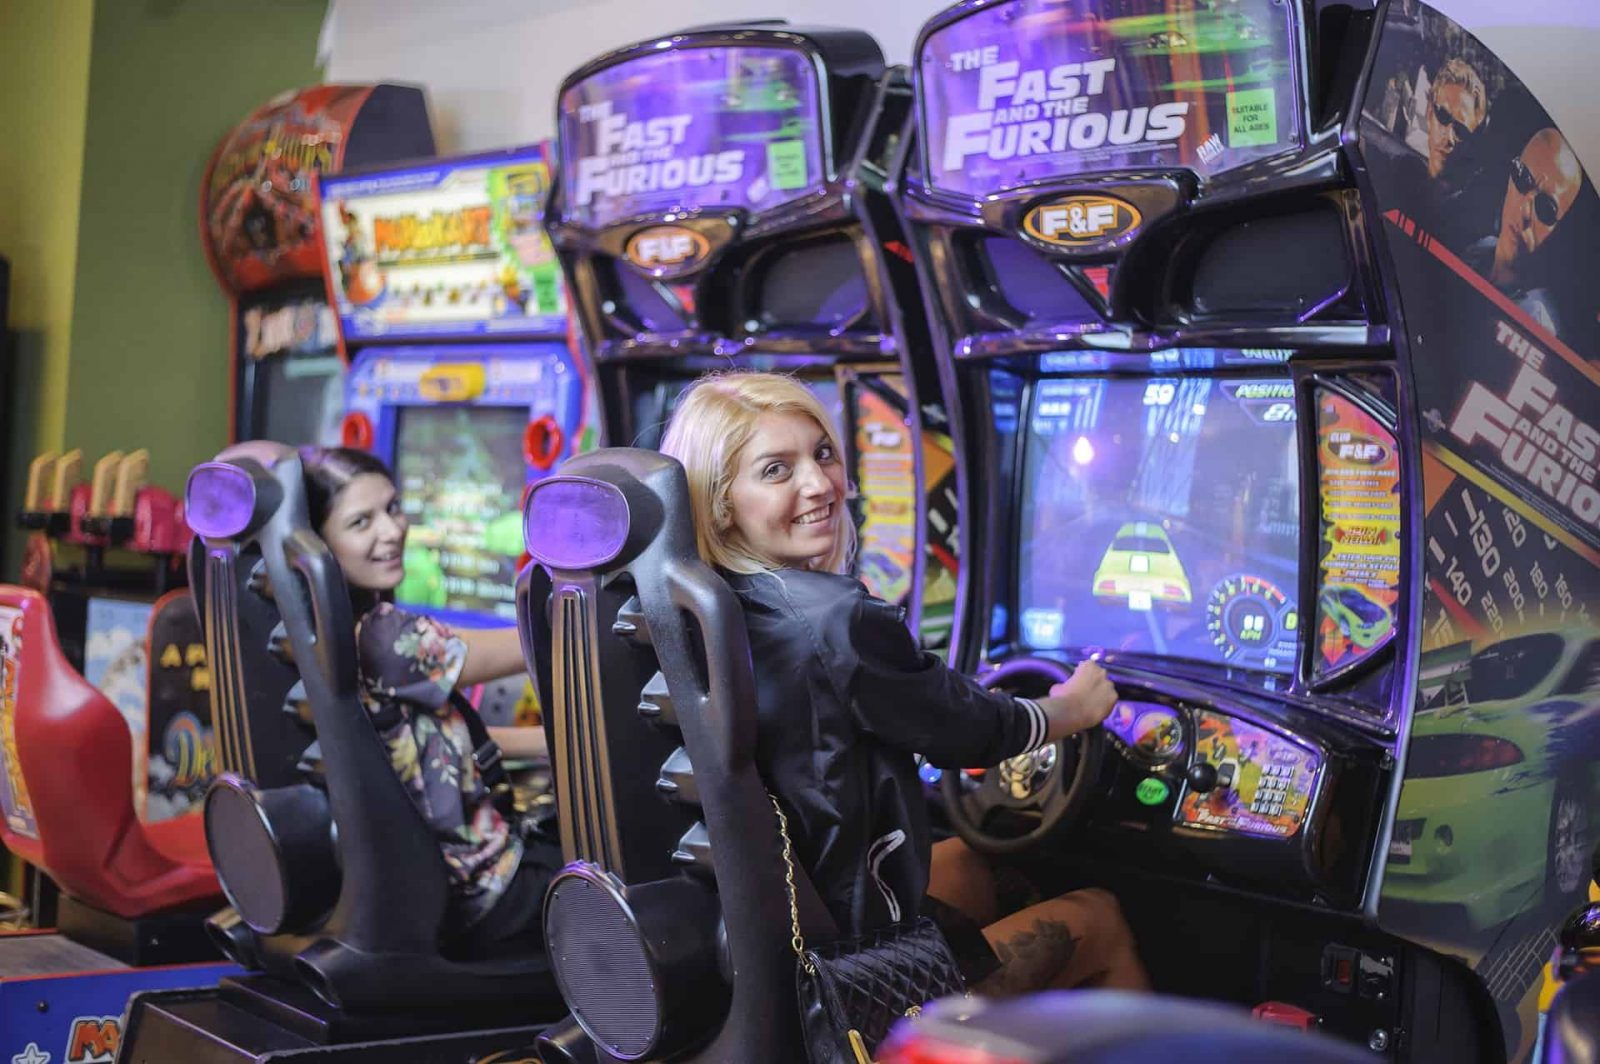 Image of 2 ladies playing Fast and The Furious Arcade Machine